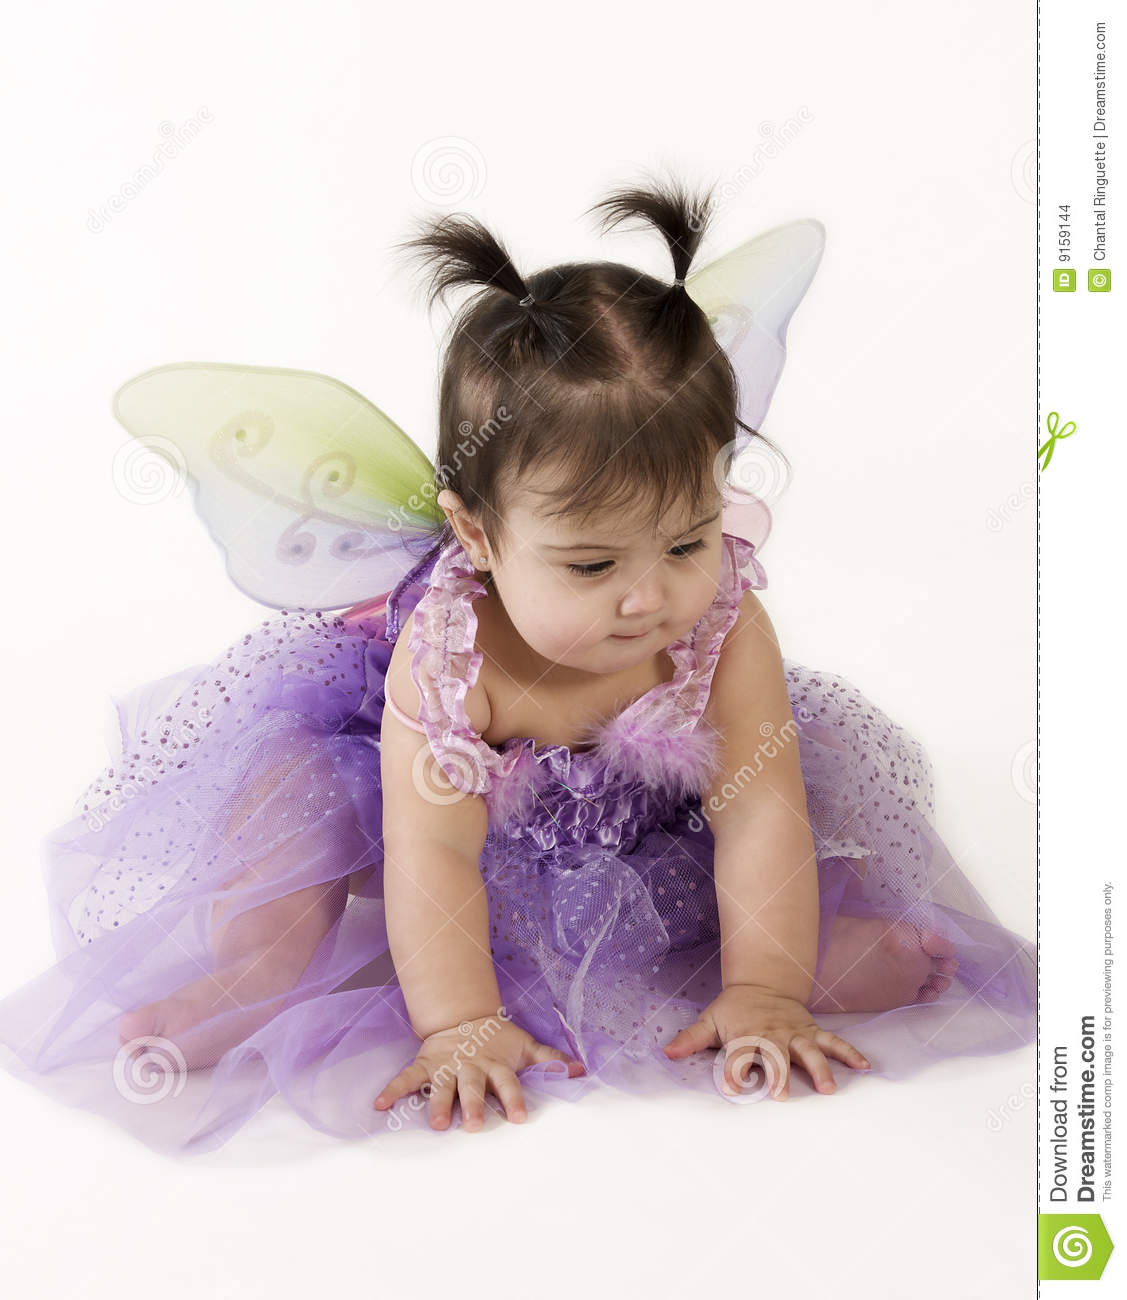 Baby Fairy Stock Photo Image Of Pigtails Dress Princess 9159144